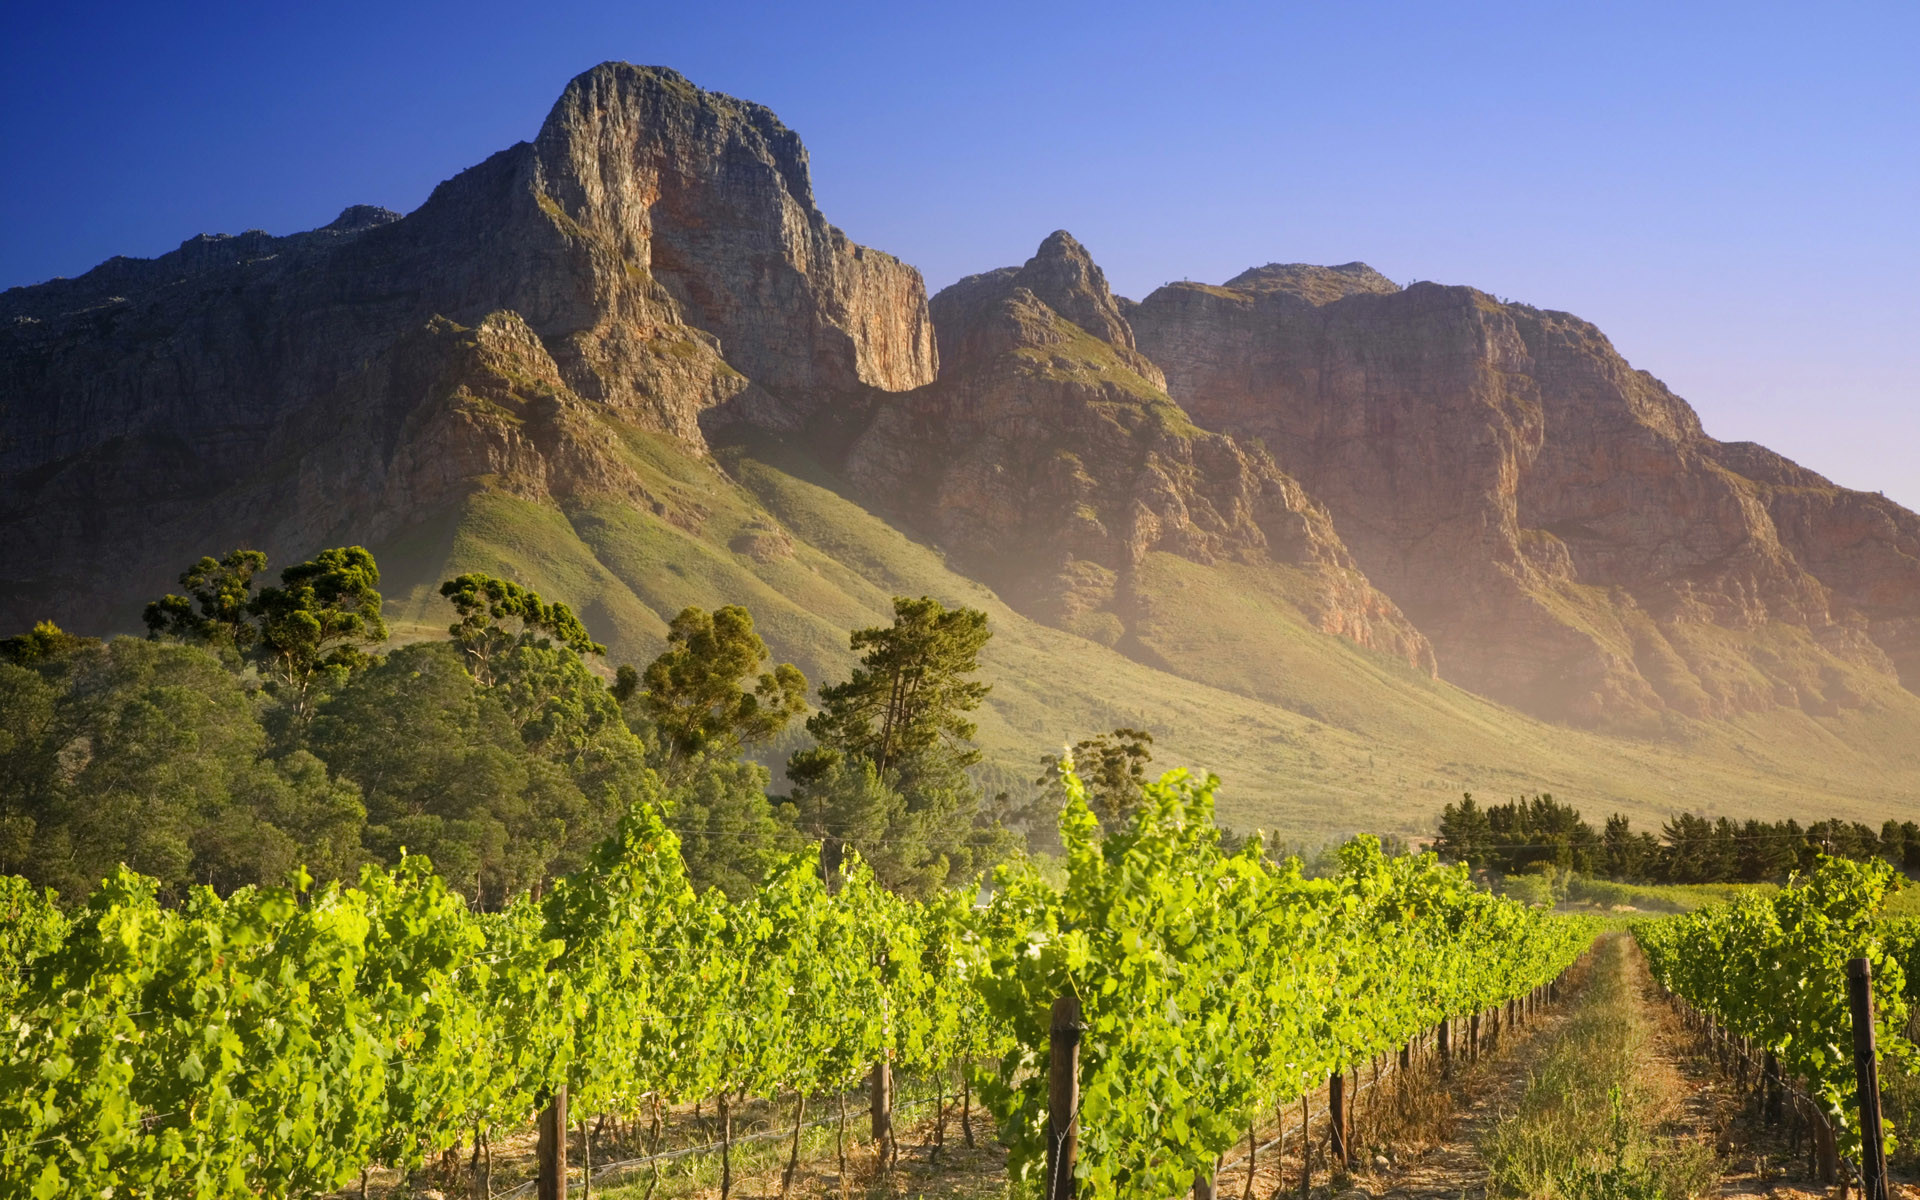 1920x1200 Vineyard HD Wallpaper | Background Image |  | ID:335225 - Wallpaper  Abyss